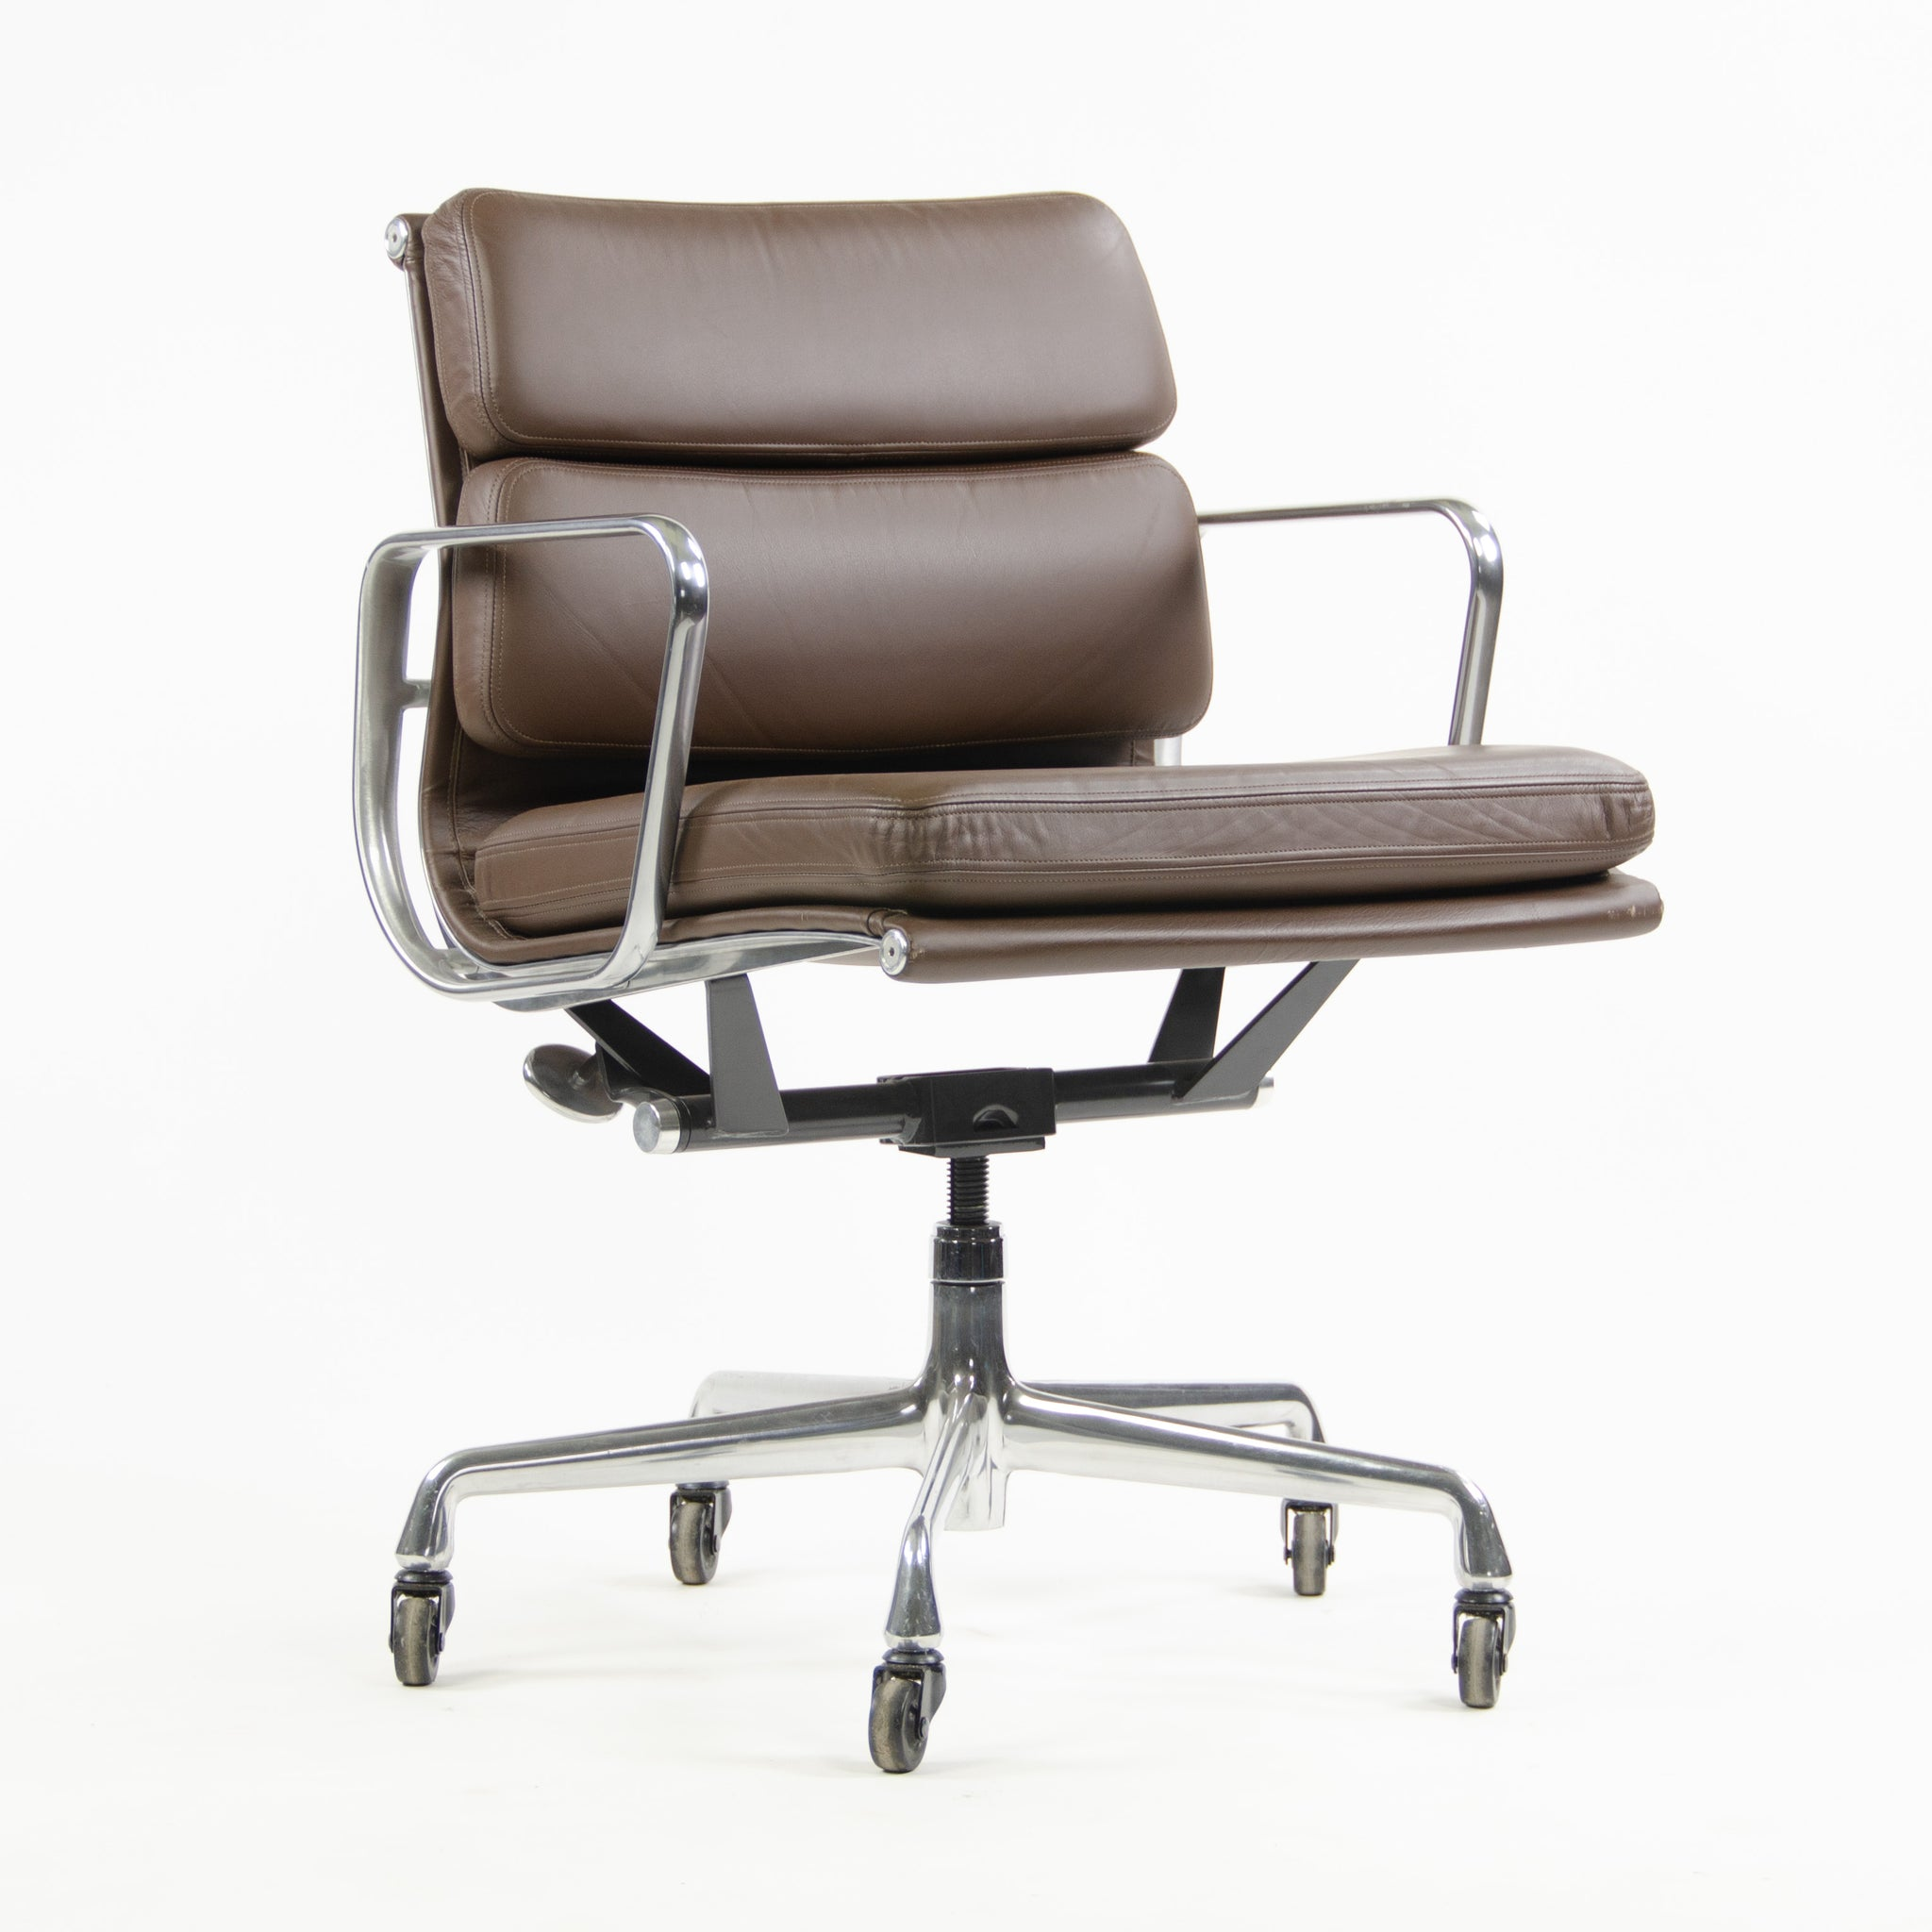 SOLD Herman Miller Eames Soft Pad Aluminum Group Chair Brown Leather 2006